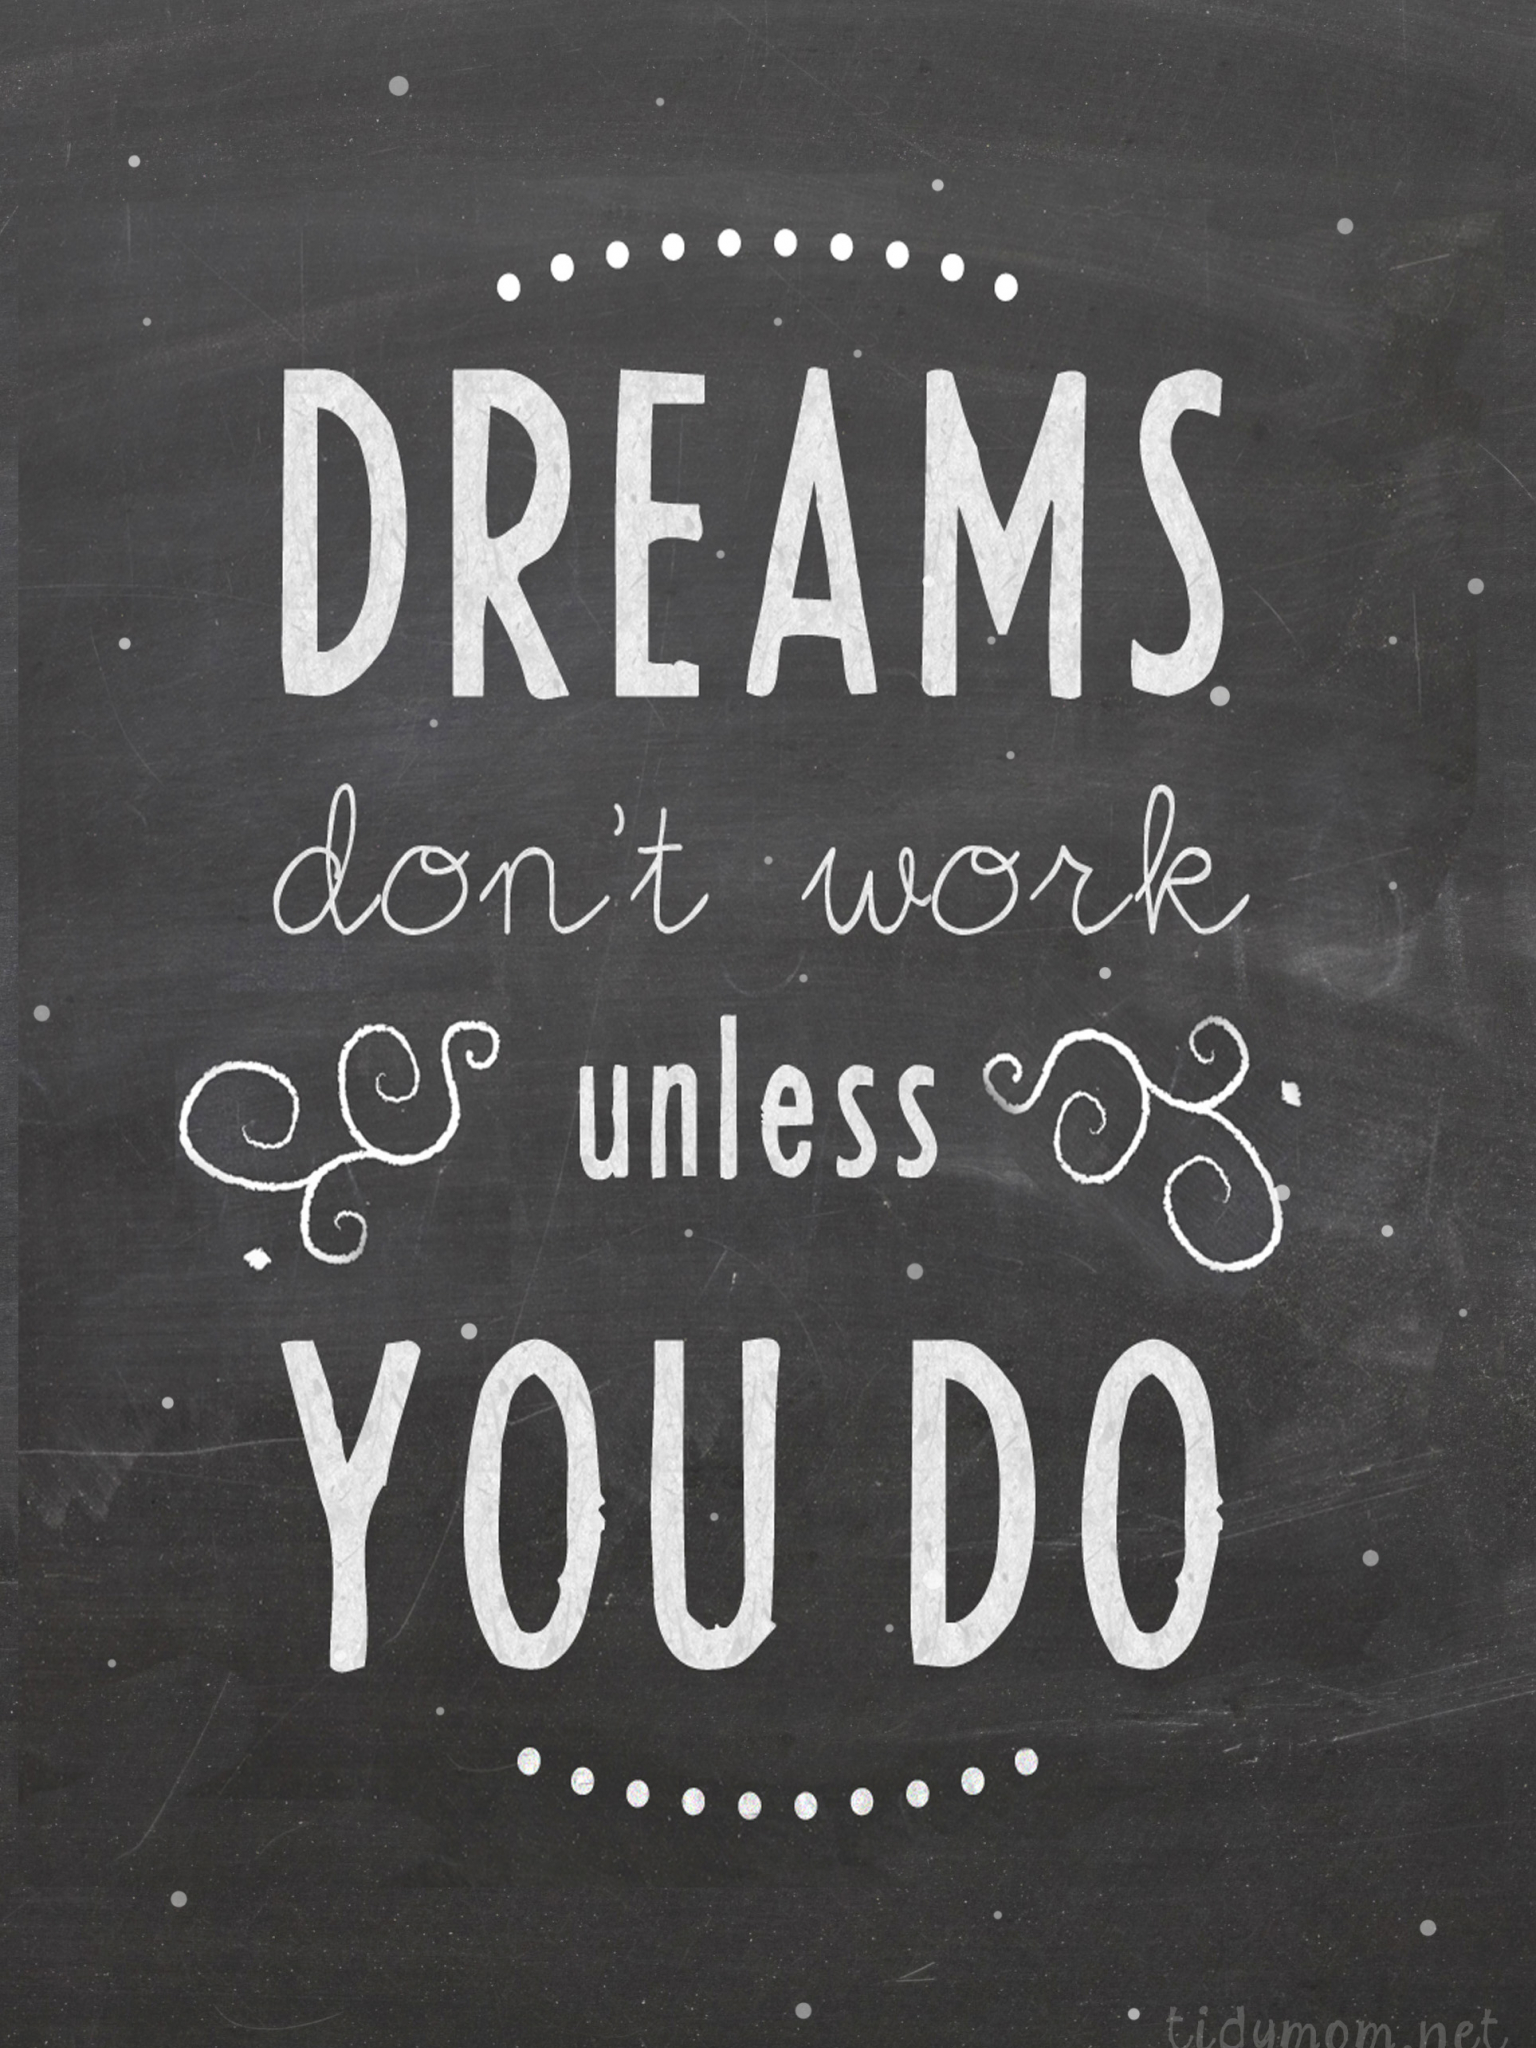 Free Download Iphone Wallpaper Quotes Quotesgram 1927x2891 For Your Desktop Mobile Tablet Explore 48 Quotes Iphone Wallpaper Inspirational Quotes Iphone Wallpapers Cute Quote Iphone Wallpapers Disney Quote Iphone Wallpaper